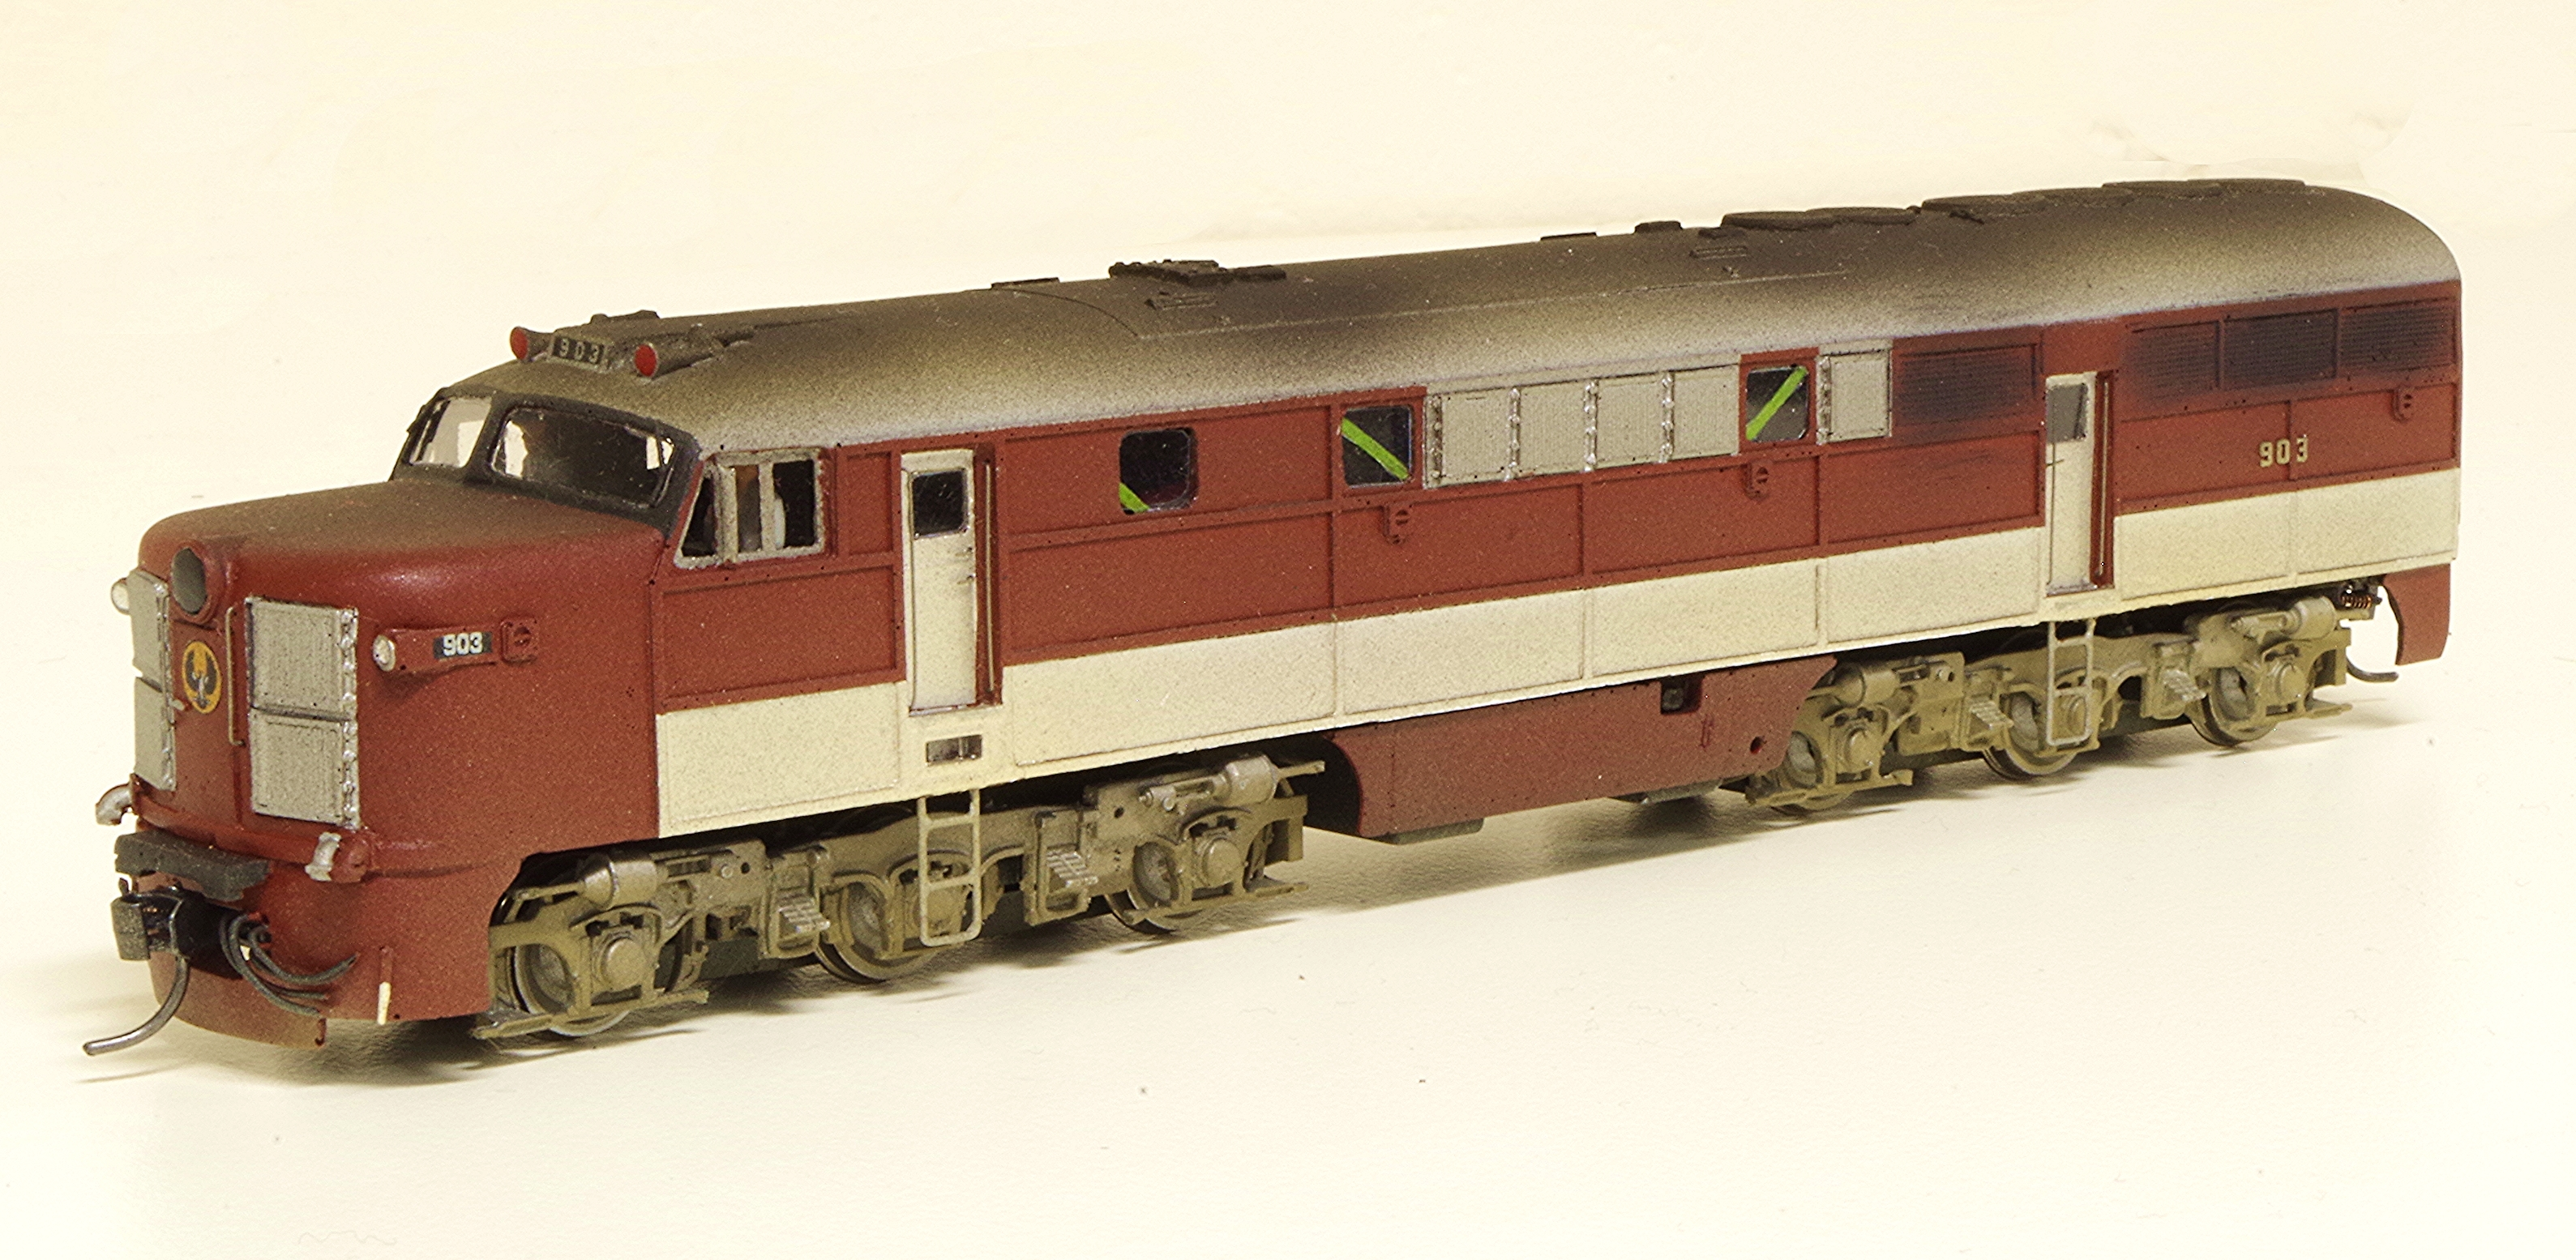 HO scale SAR 900 class diesel electric No.903